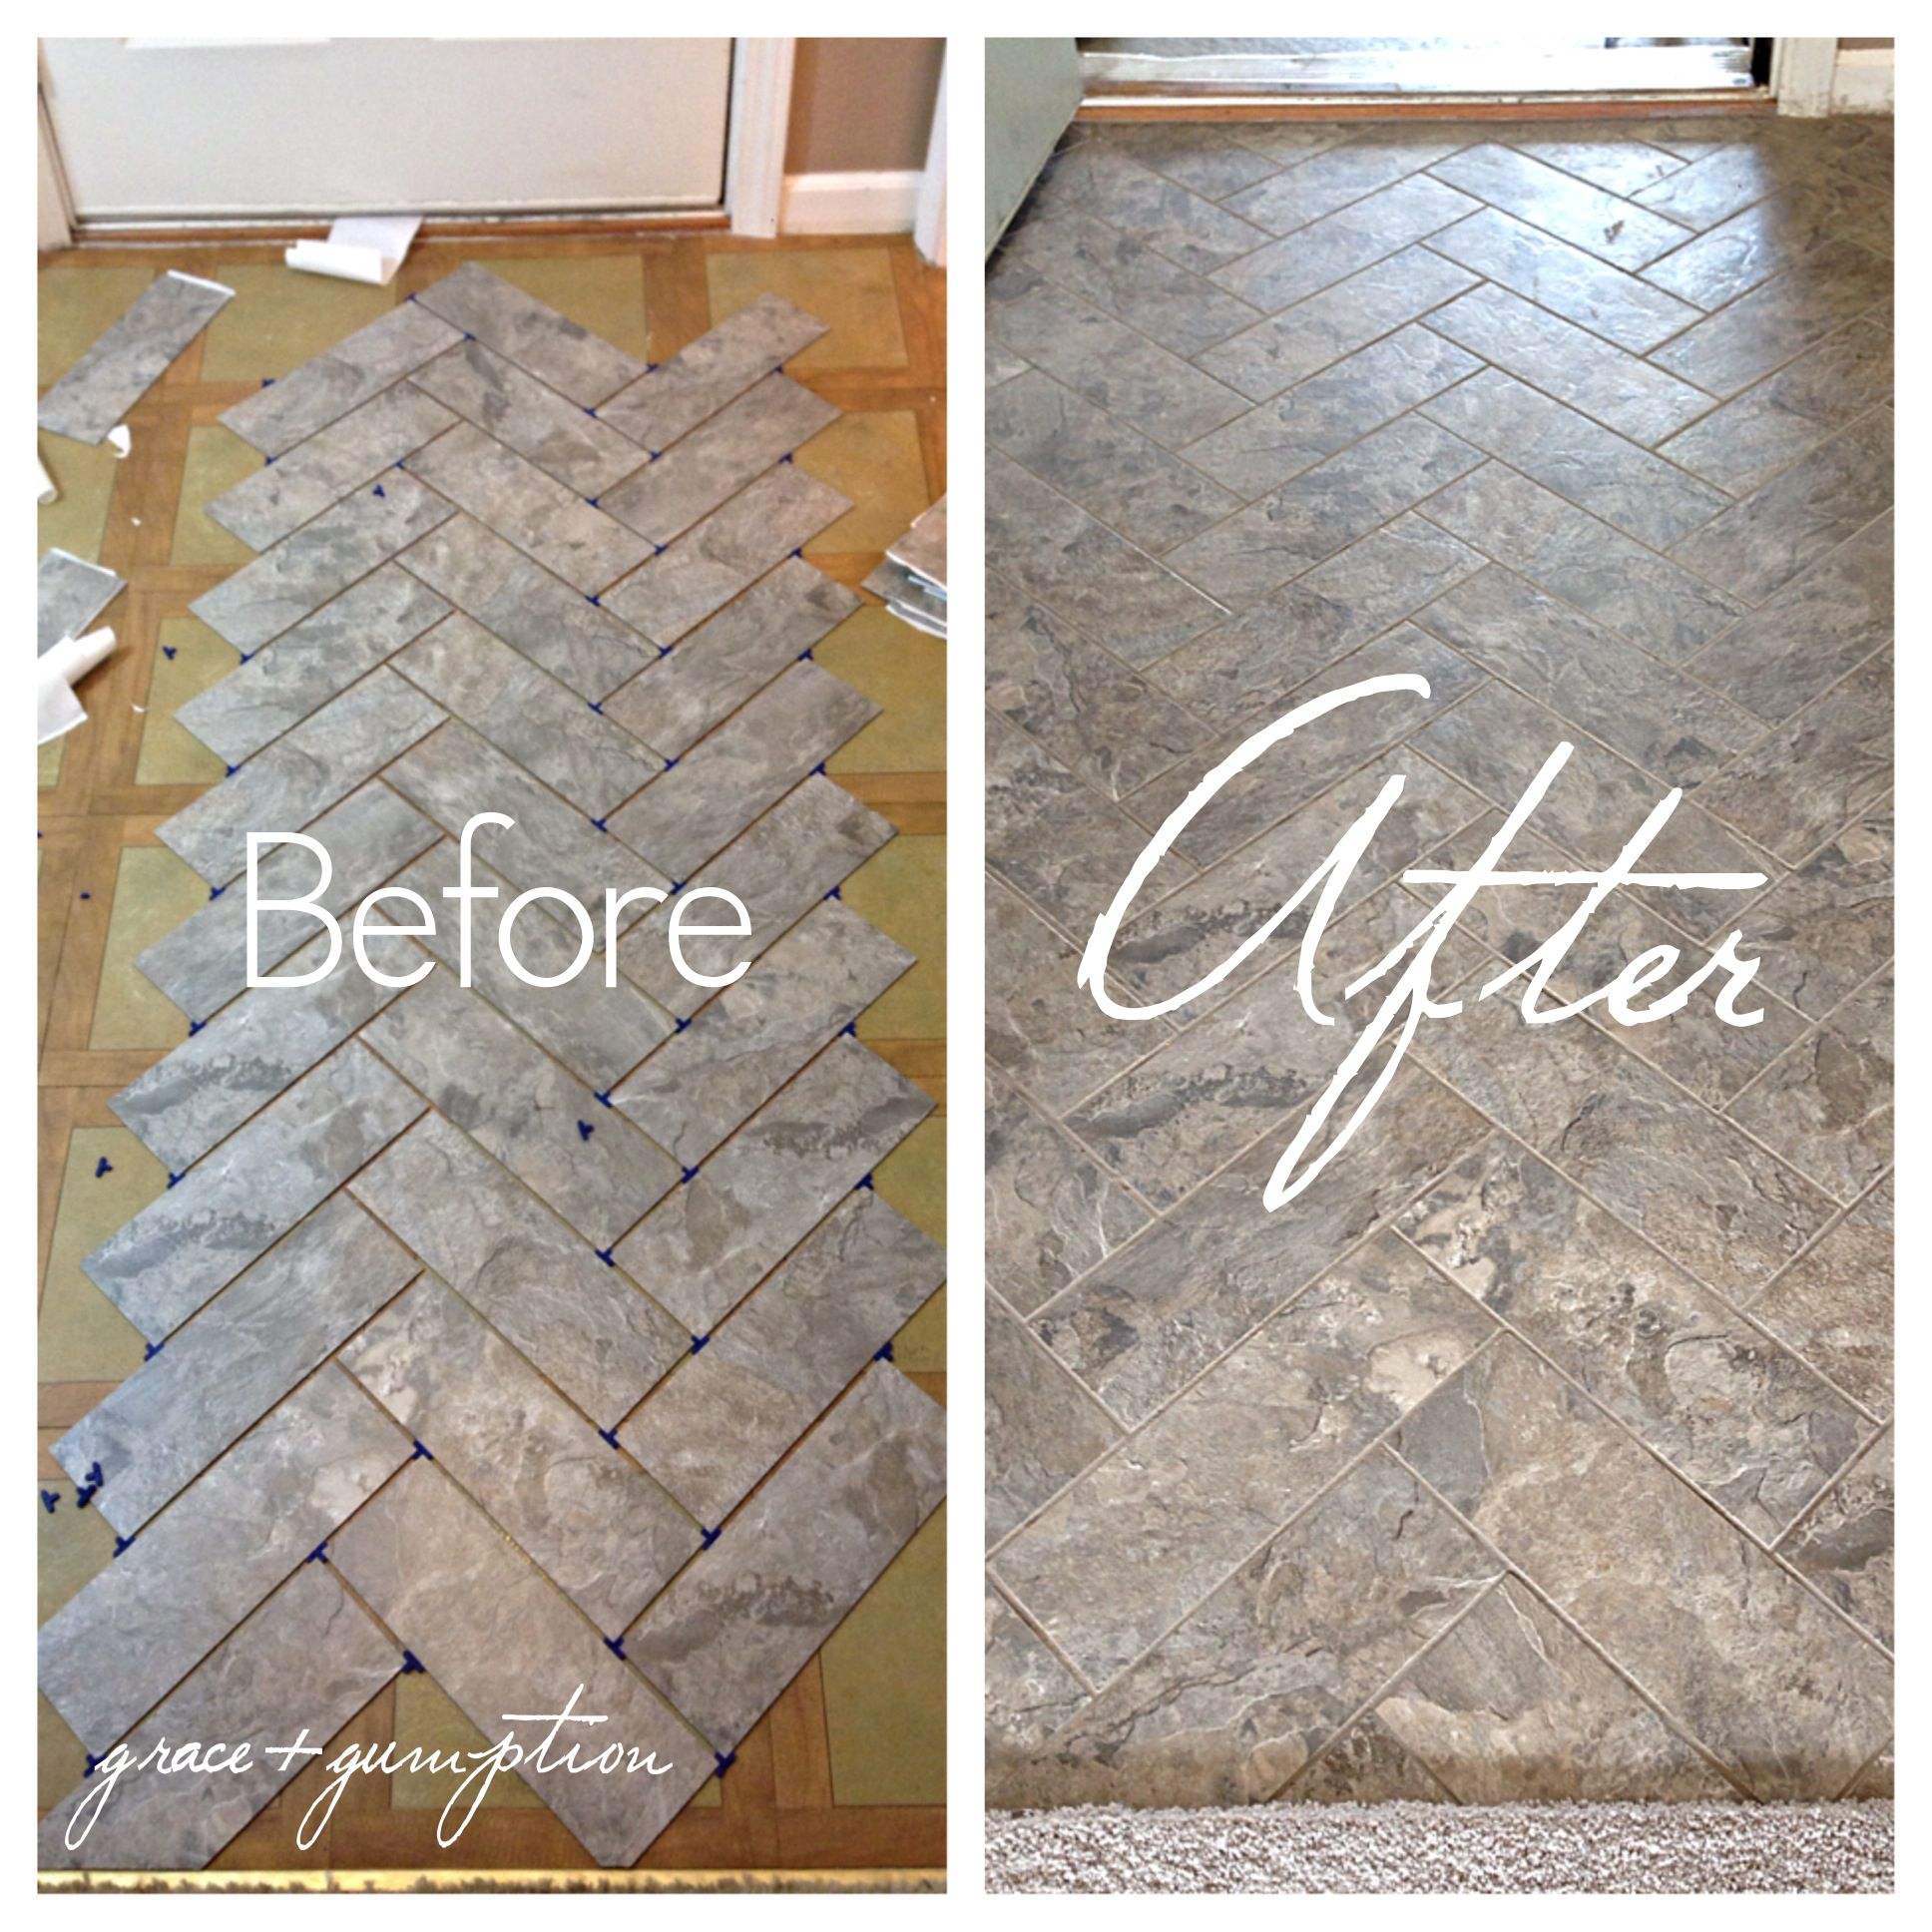 Vinyl Tiles For Kitchen Floor Diy Herringbone Peel N Stick Tile Floor Before And After By Grace